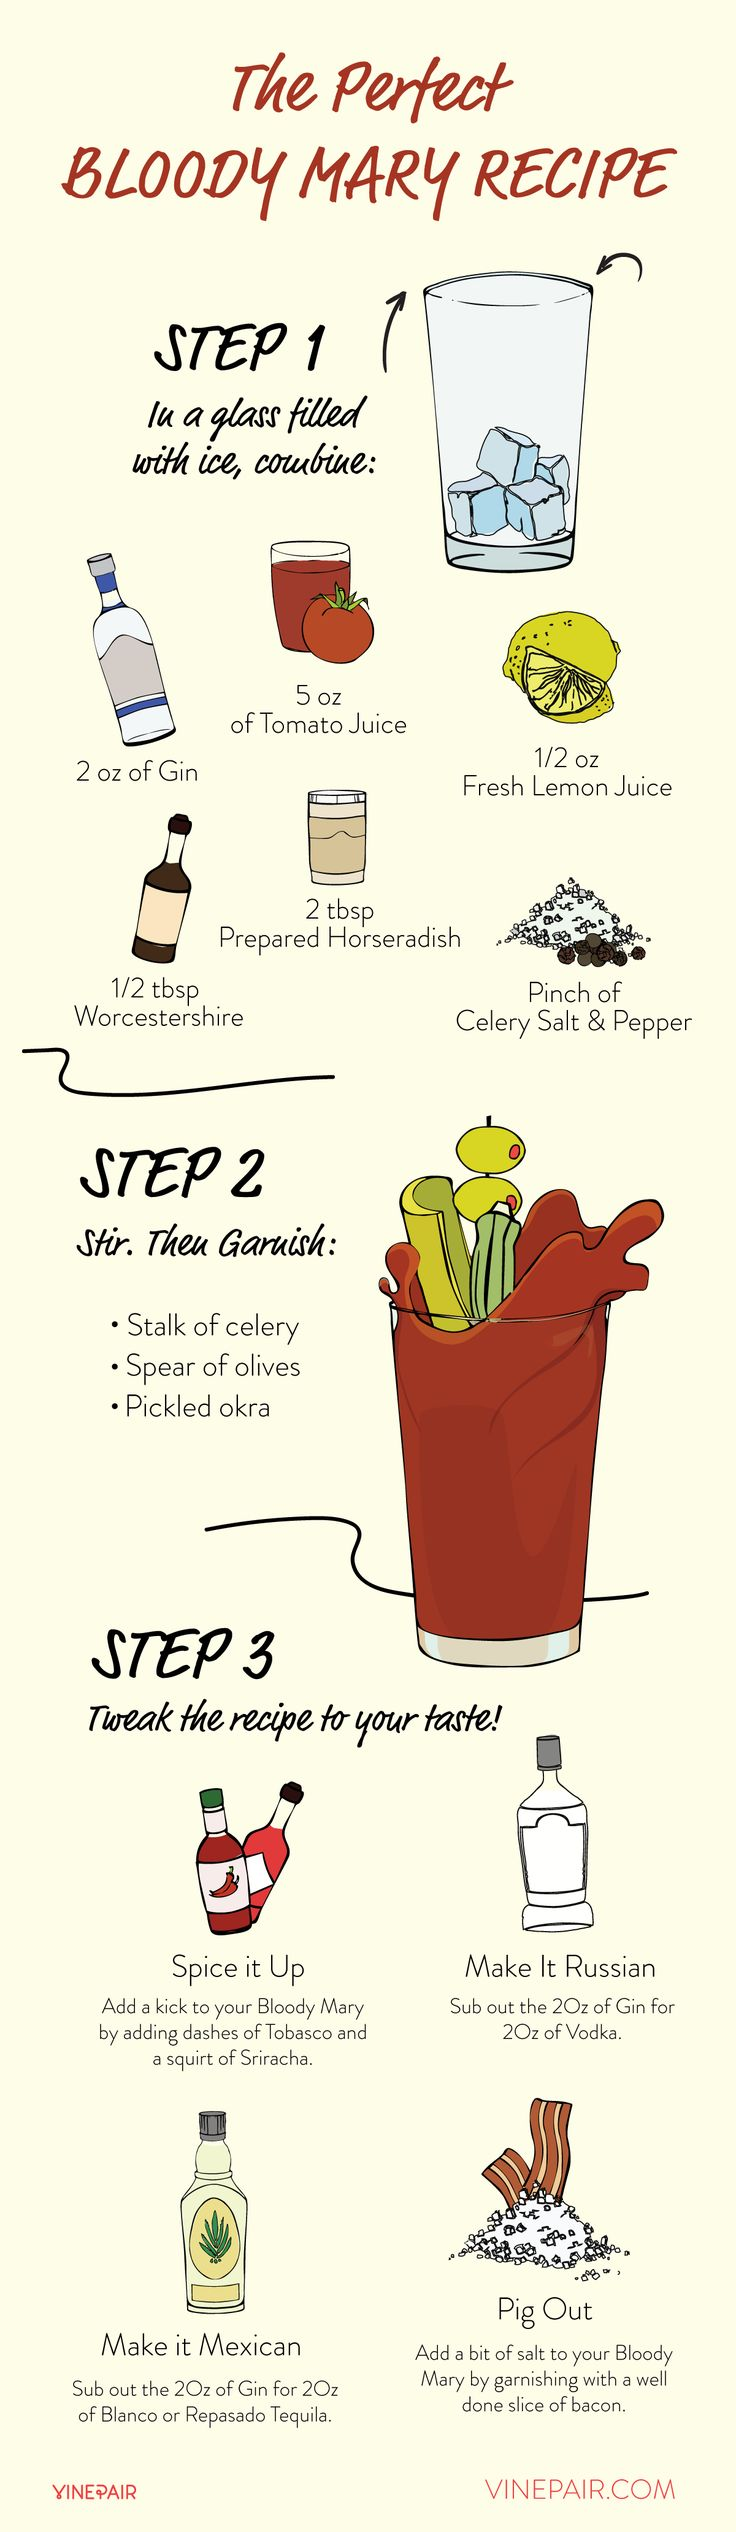 The Perfect Bloody Mary Recipe [Illustrated Infographic]